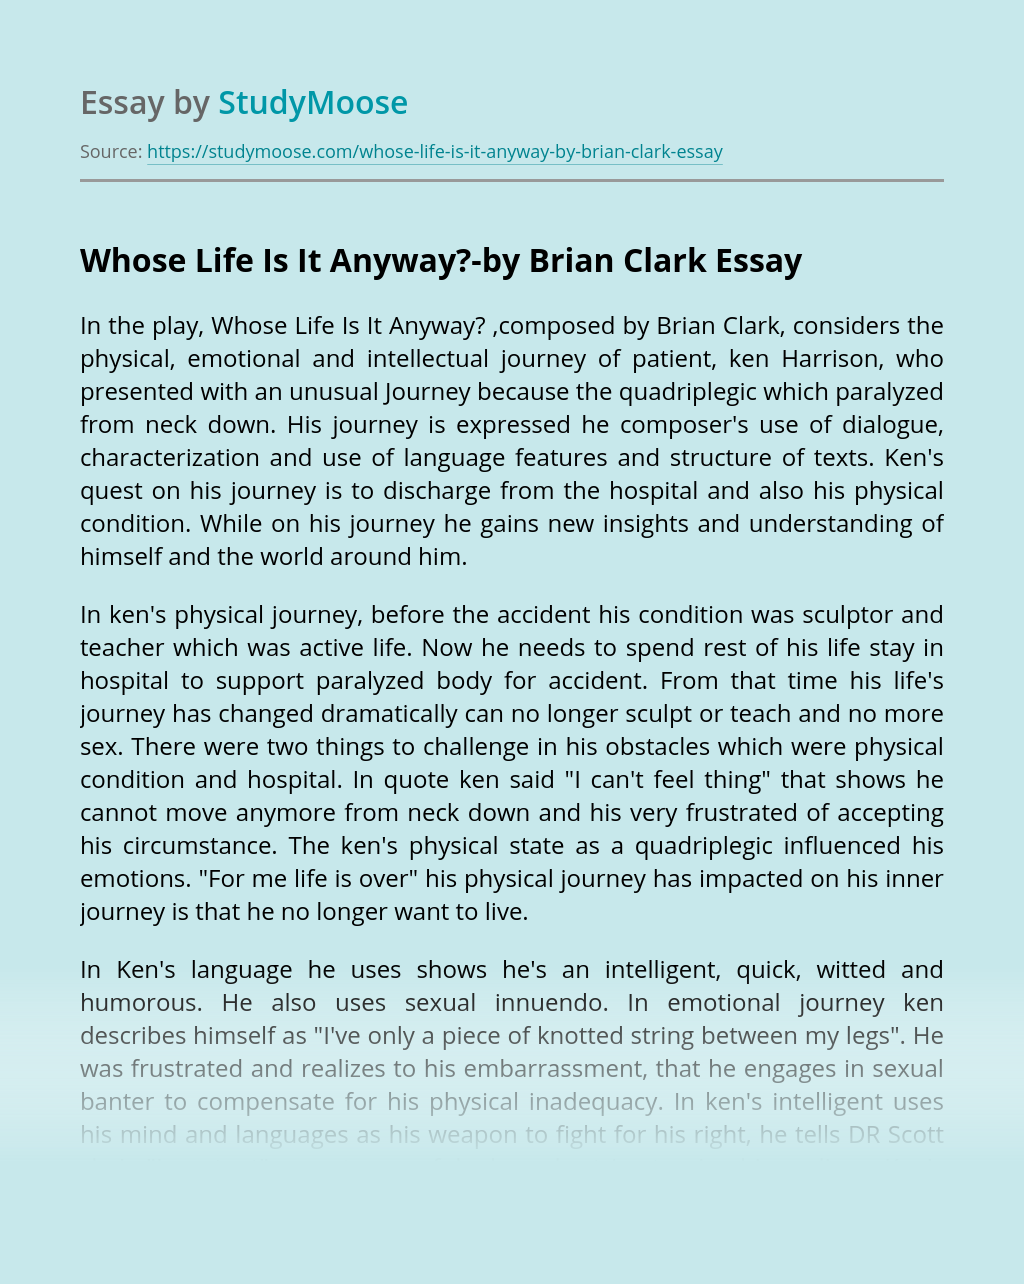 Whose Life Is It Anyway?-by Brian Clark